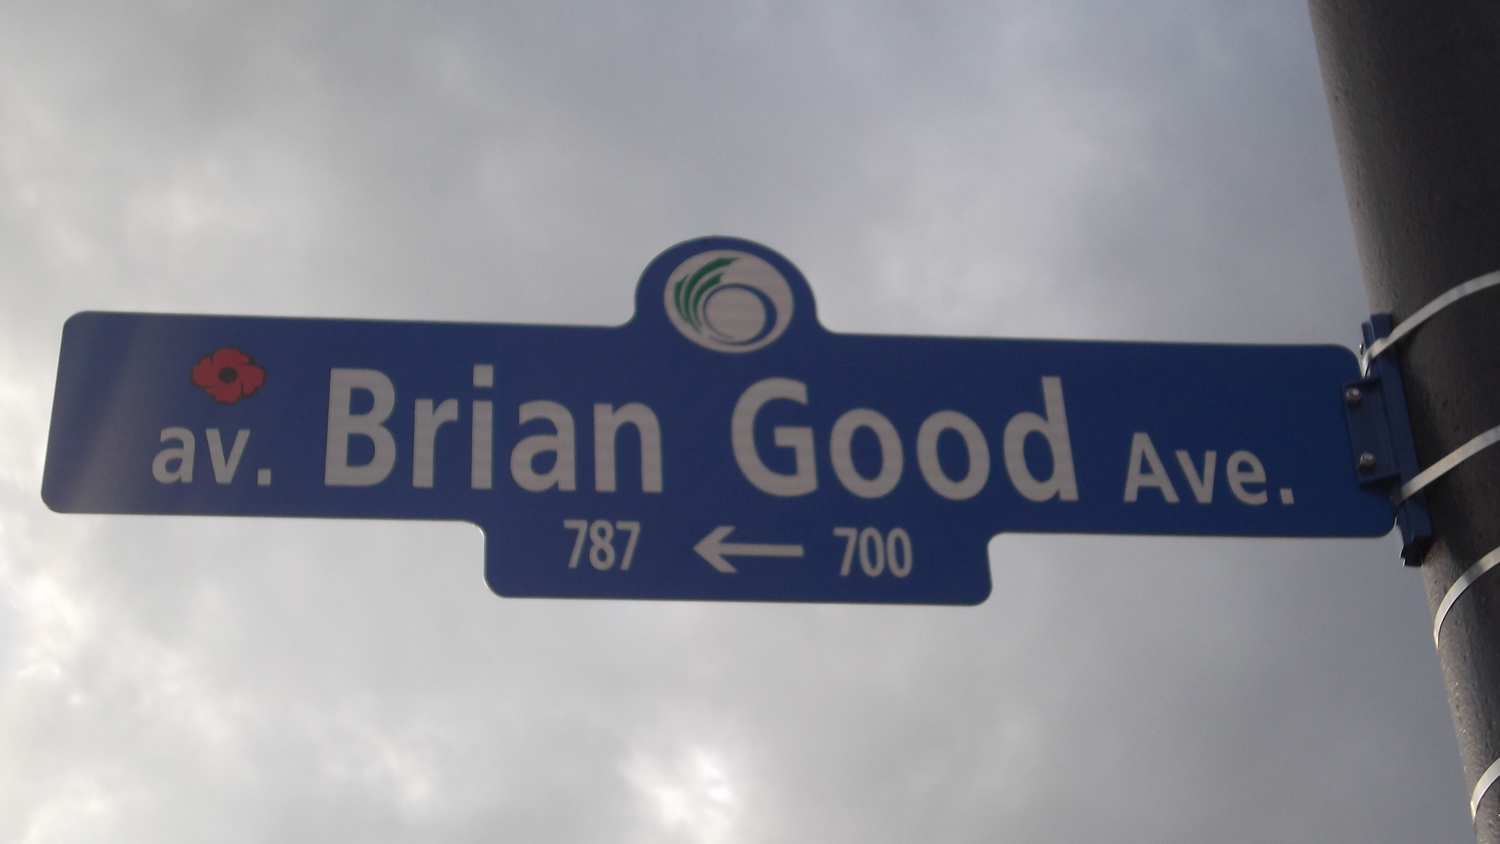 """Street– Tpr Brian Good is commemorated on street sign in Ottawa, ON.  Copyright © 2017 by T.L. Skelding. All rights reserved. The photograph(s) may be used solely for personal, informational, and internal purposes. The photograph(s) may not be modified or altered in any way OR posted on any other web-site for any purpose whatsoever. I request to be notified where the image is being used and that the tag """"Courtesy The Mounted Dragoon. Copyrighted Image. Used with Permission."""" is added to every image."""